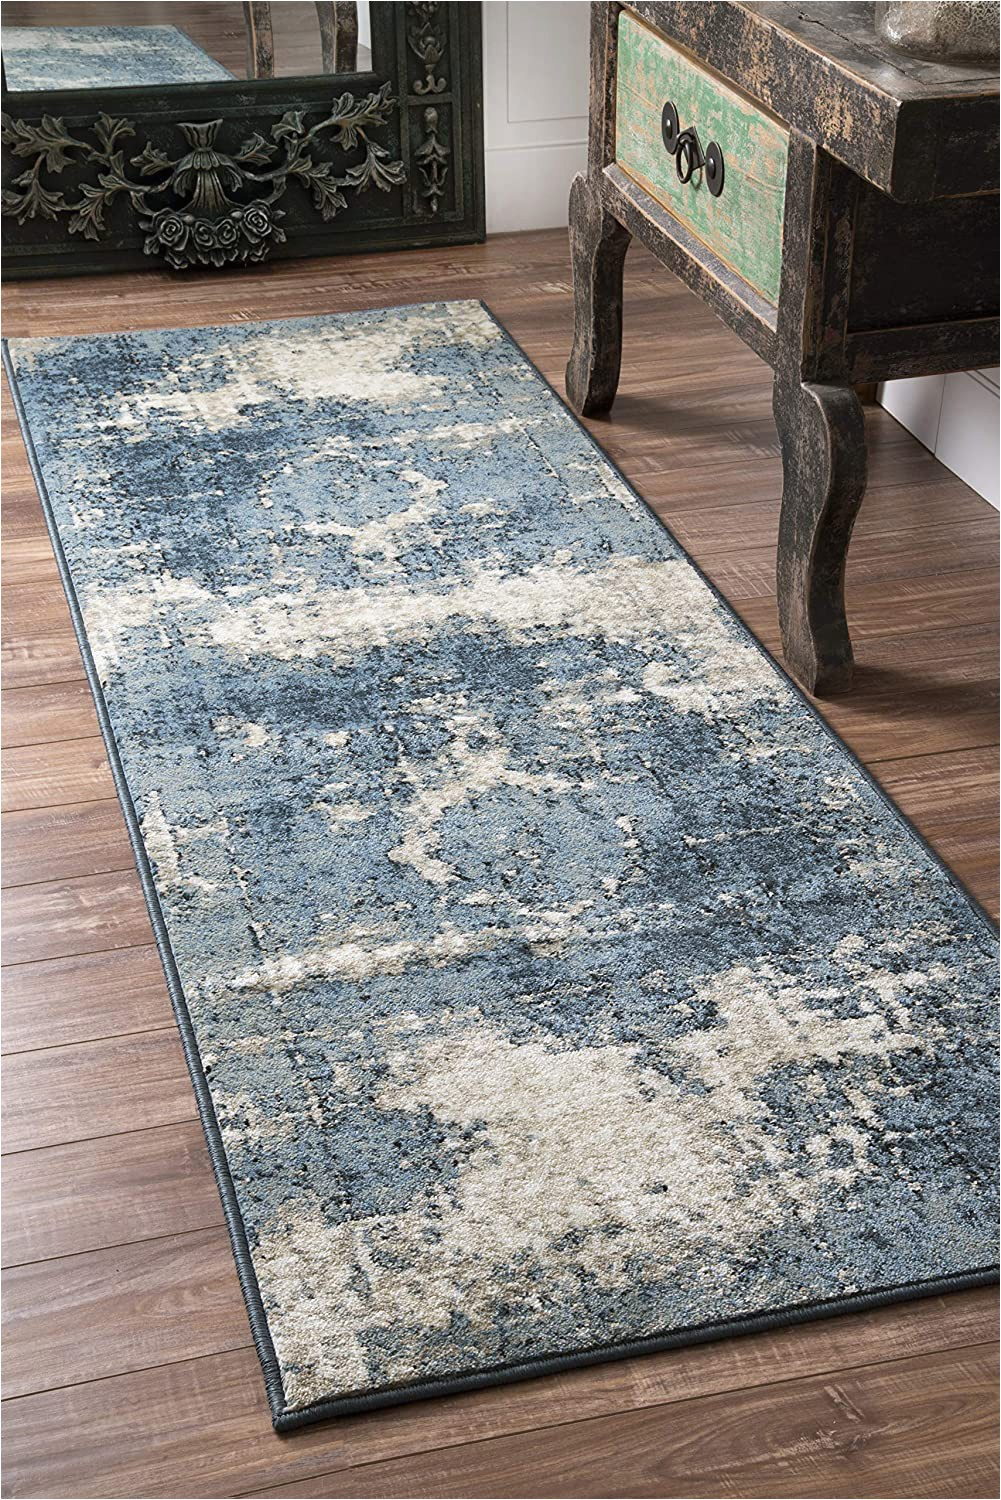 "Nuloom Vintage Distressed area Rug Nuloom Vintage Lindsy Distressed Runner Rug 2 8"" X 12 Blue"